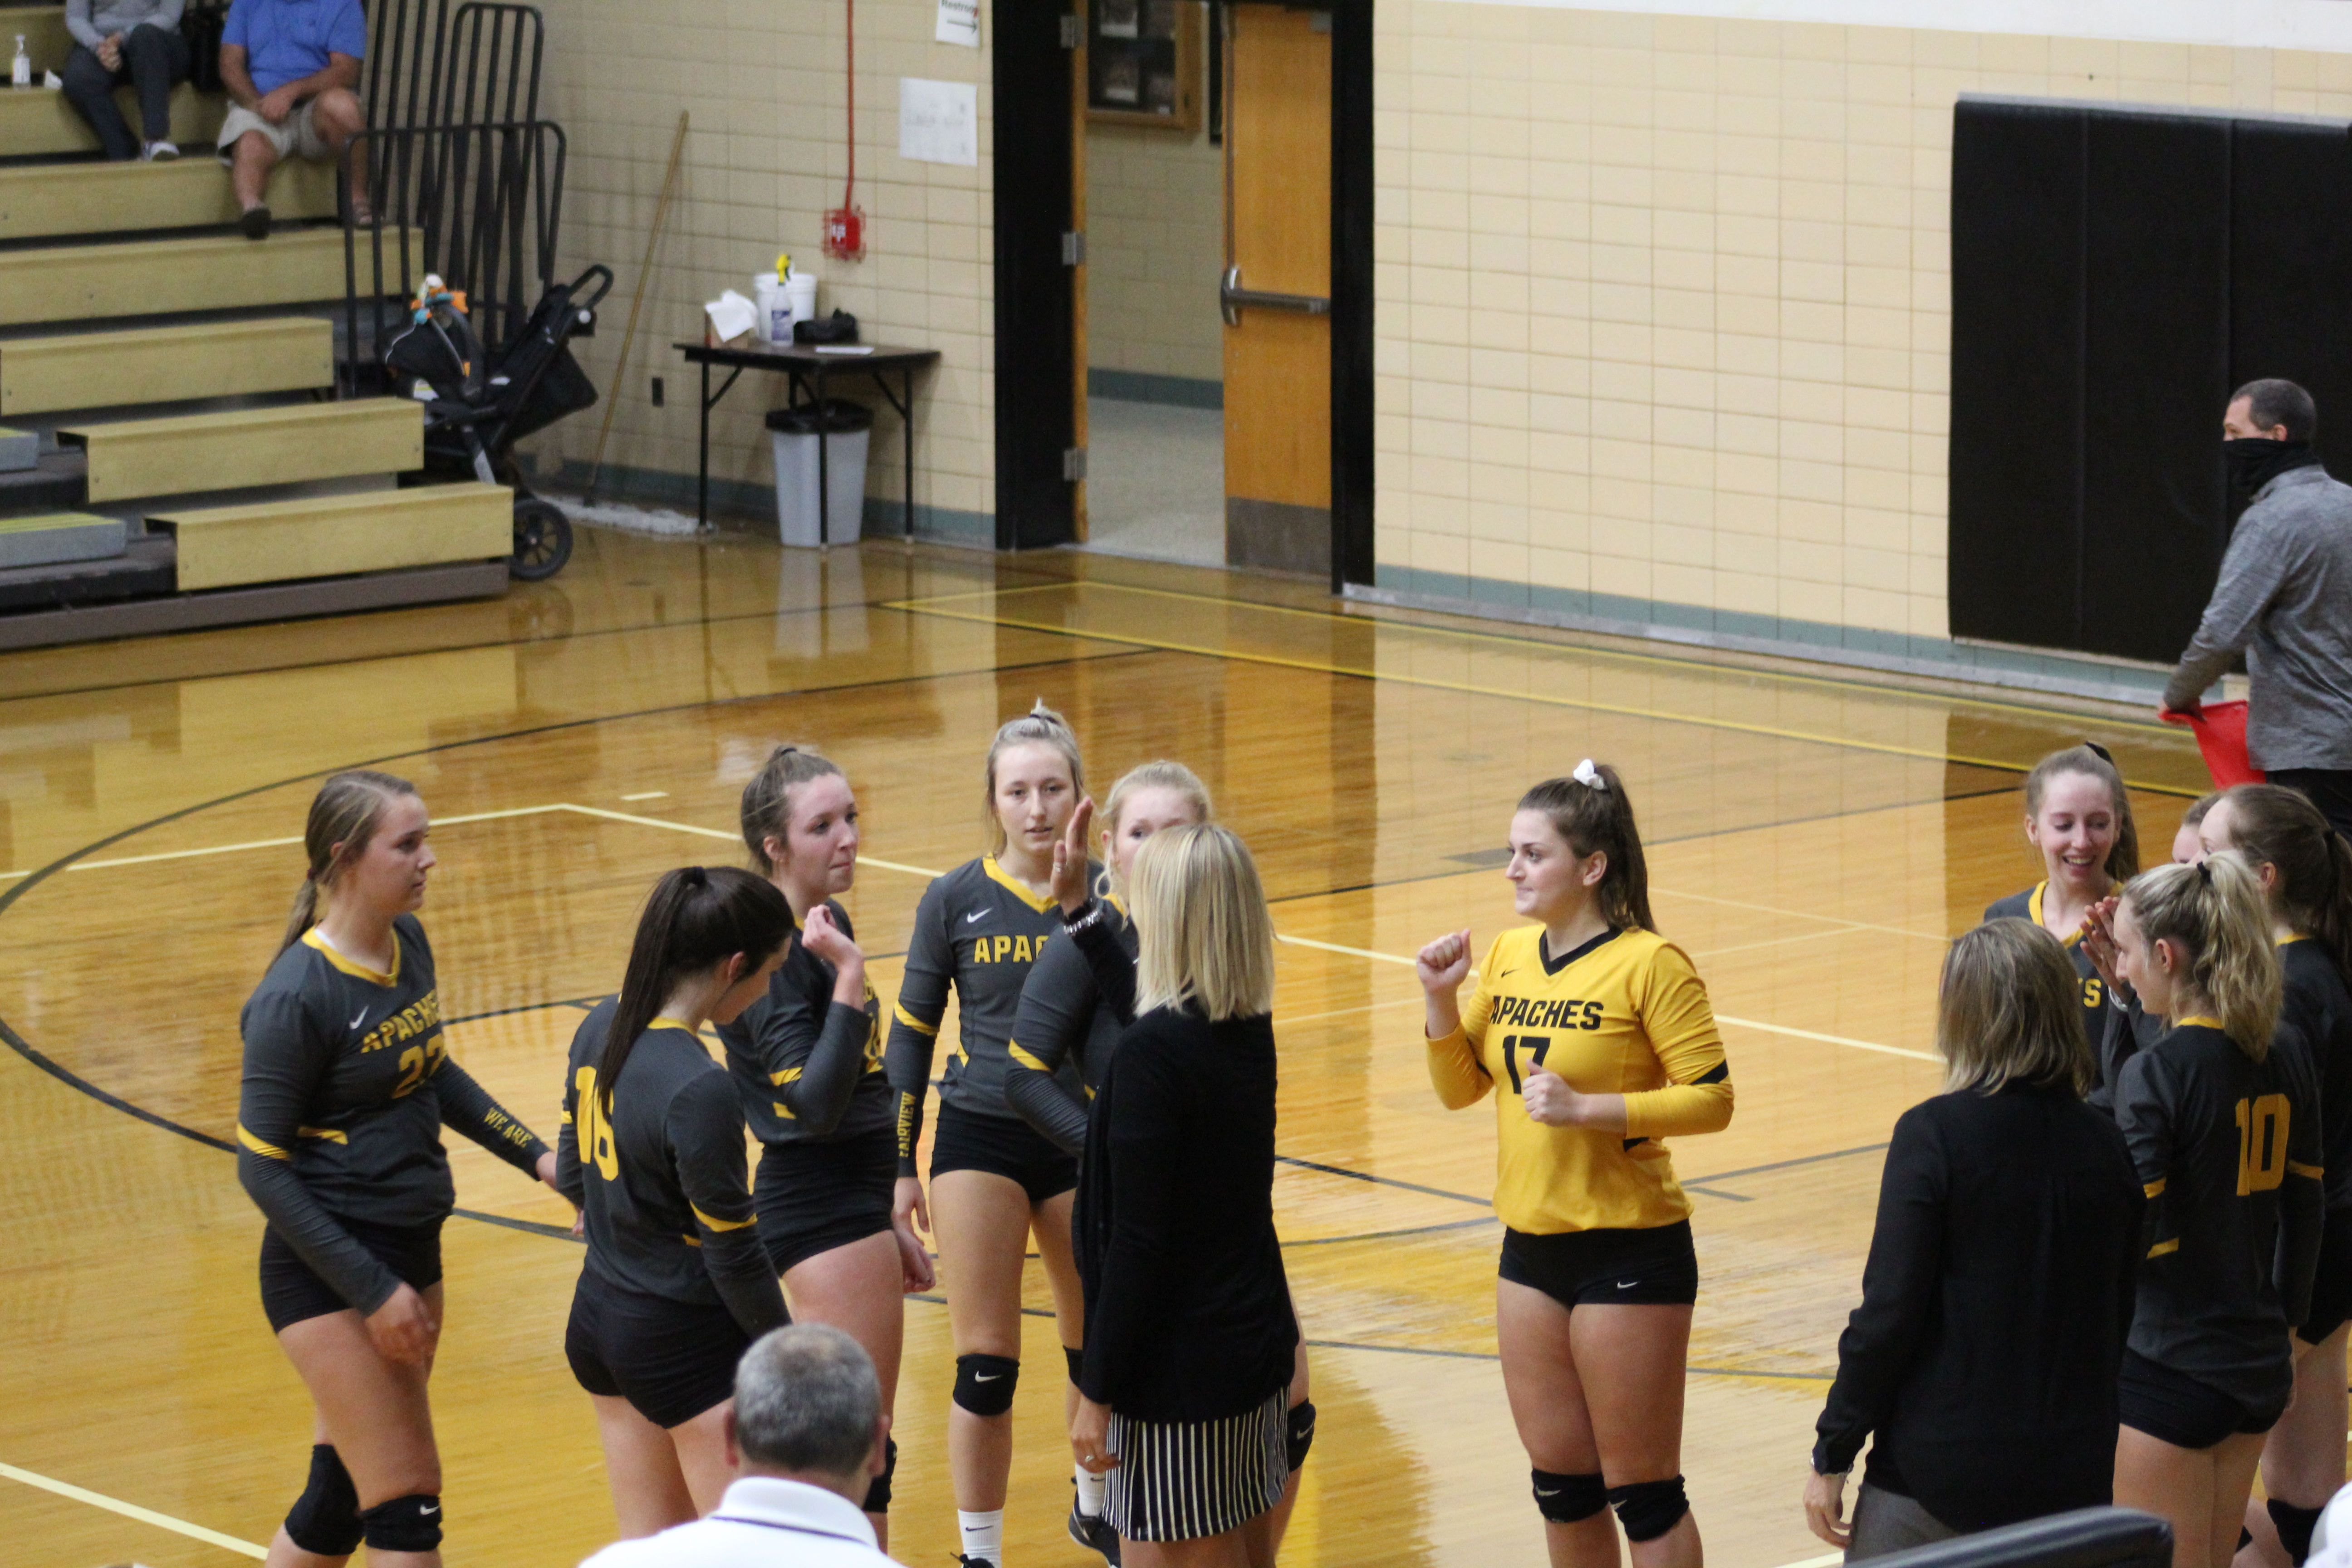 3 Volleyball Players earn District Honors, Ciolek earns Coach of The Year